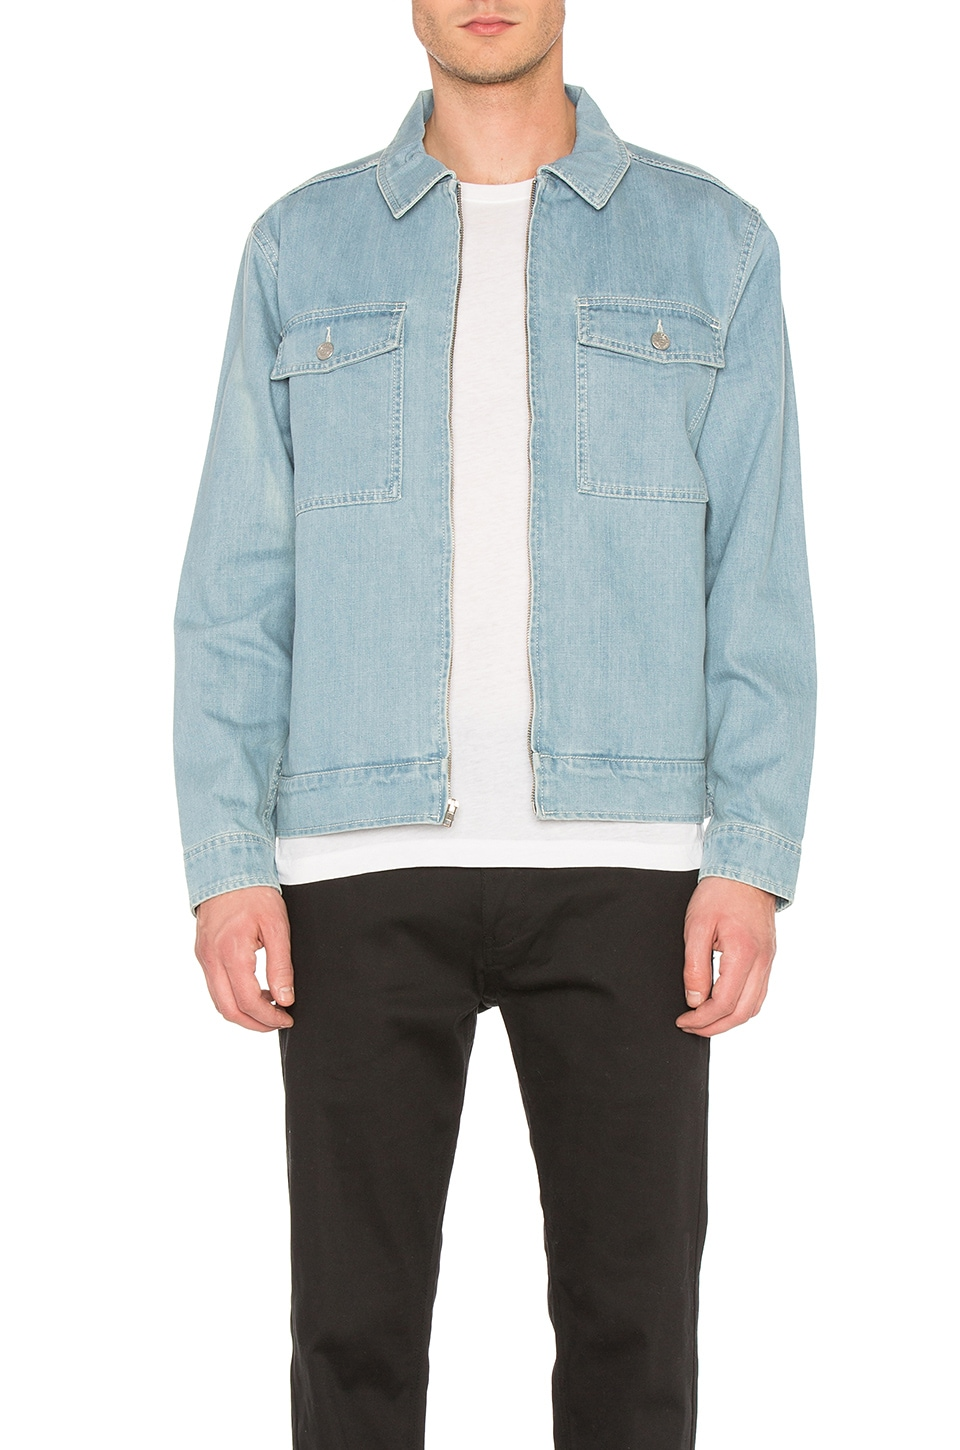 Washed Denim Garage Jacket by Stussy